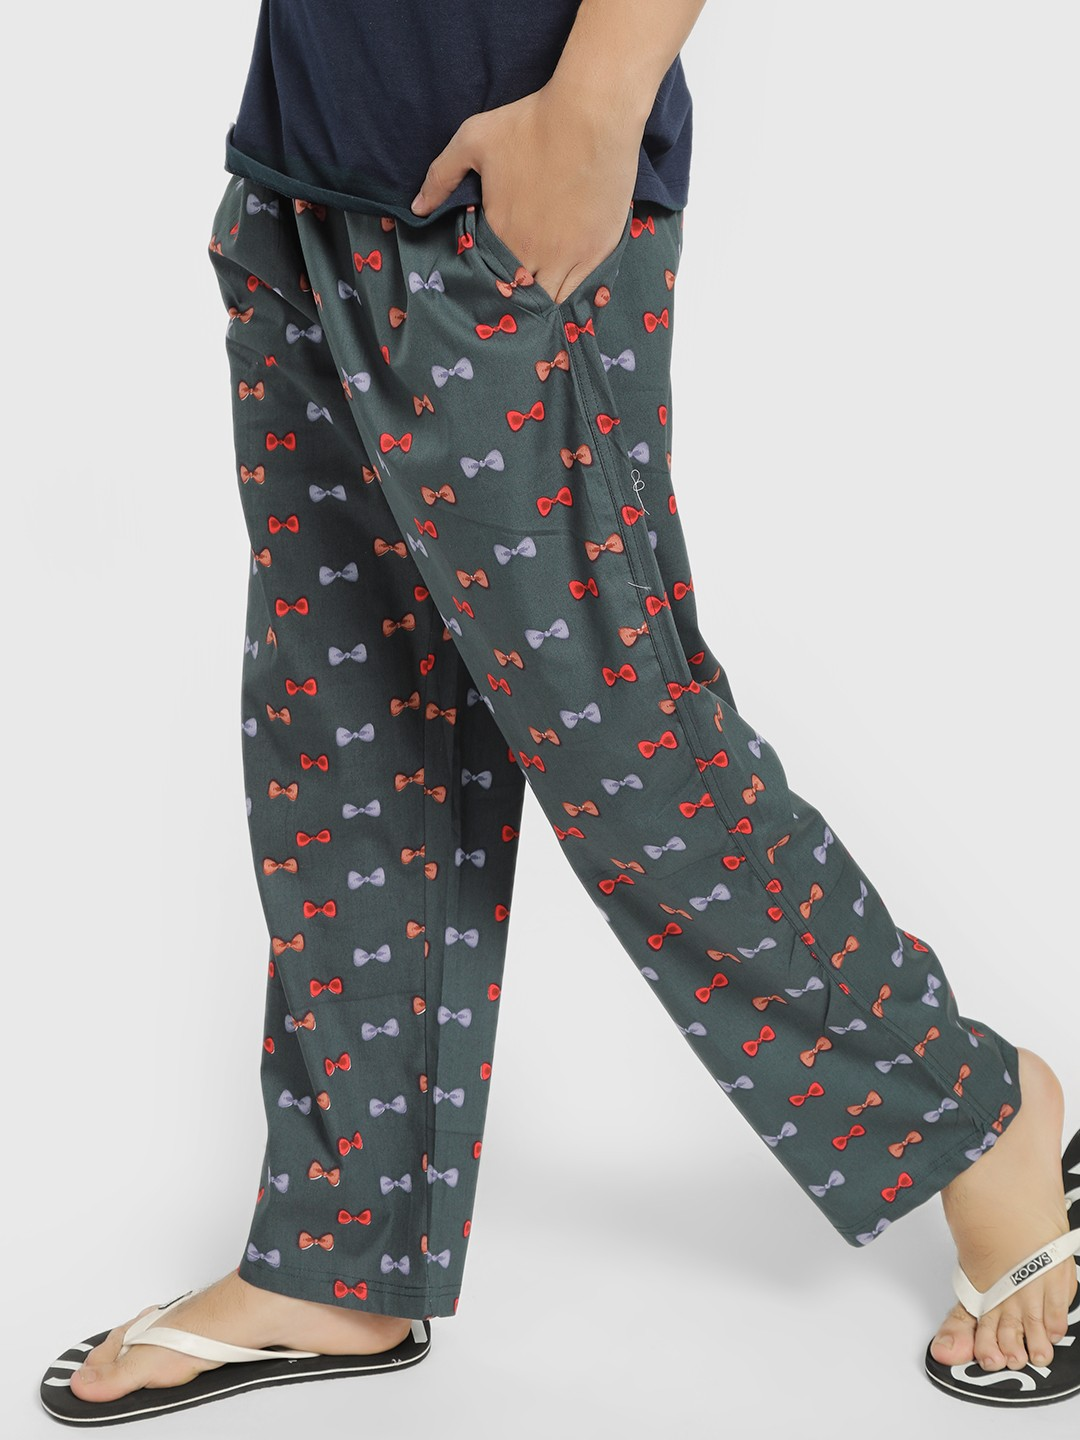 SMUGGLERZ Black Bow Print Lounge Pants 1